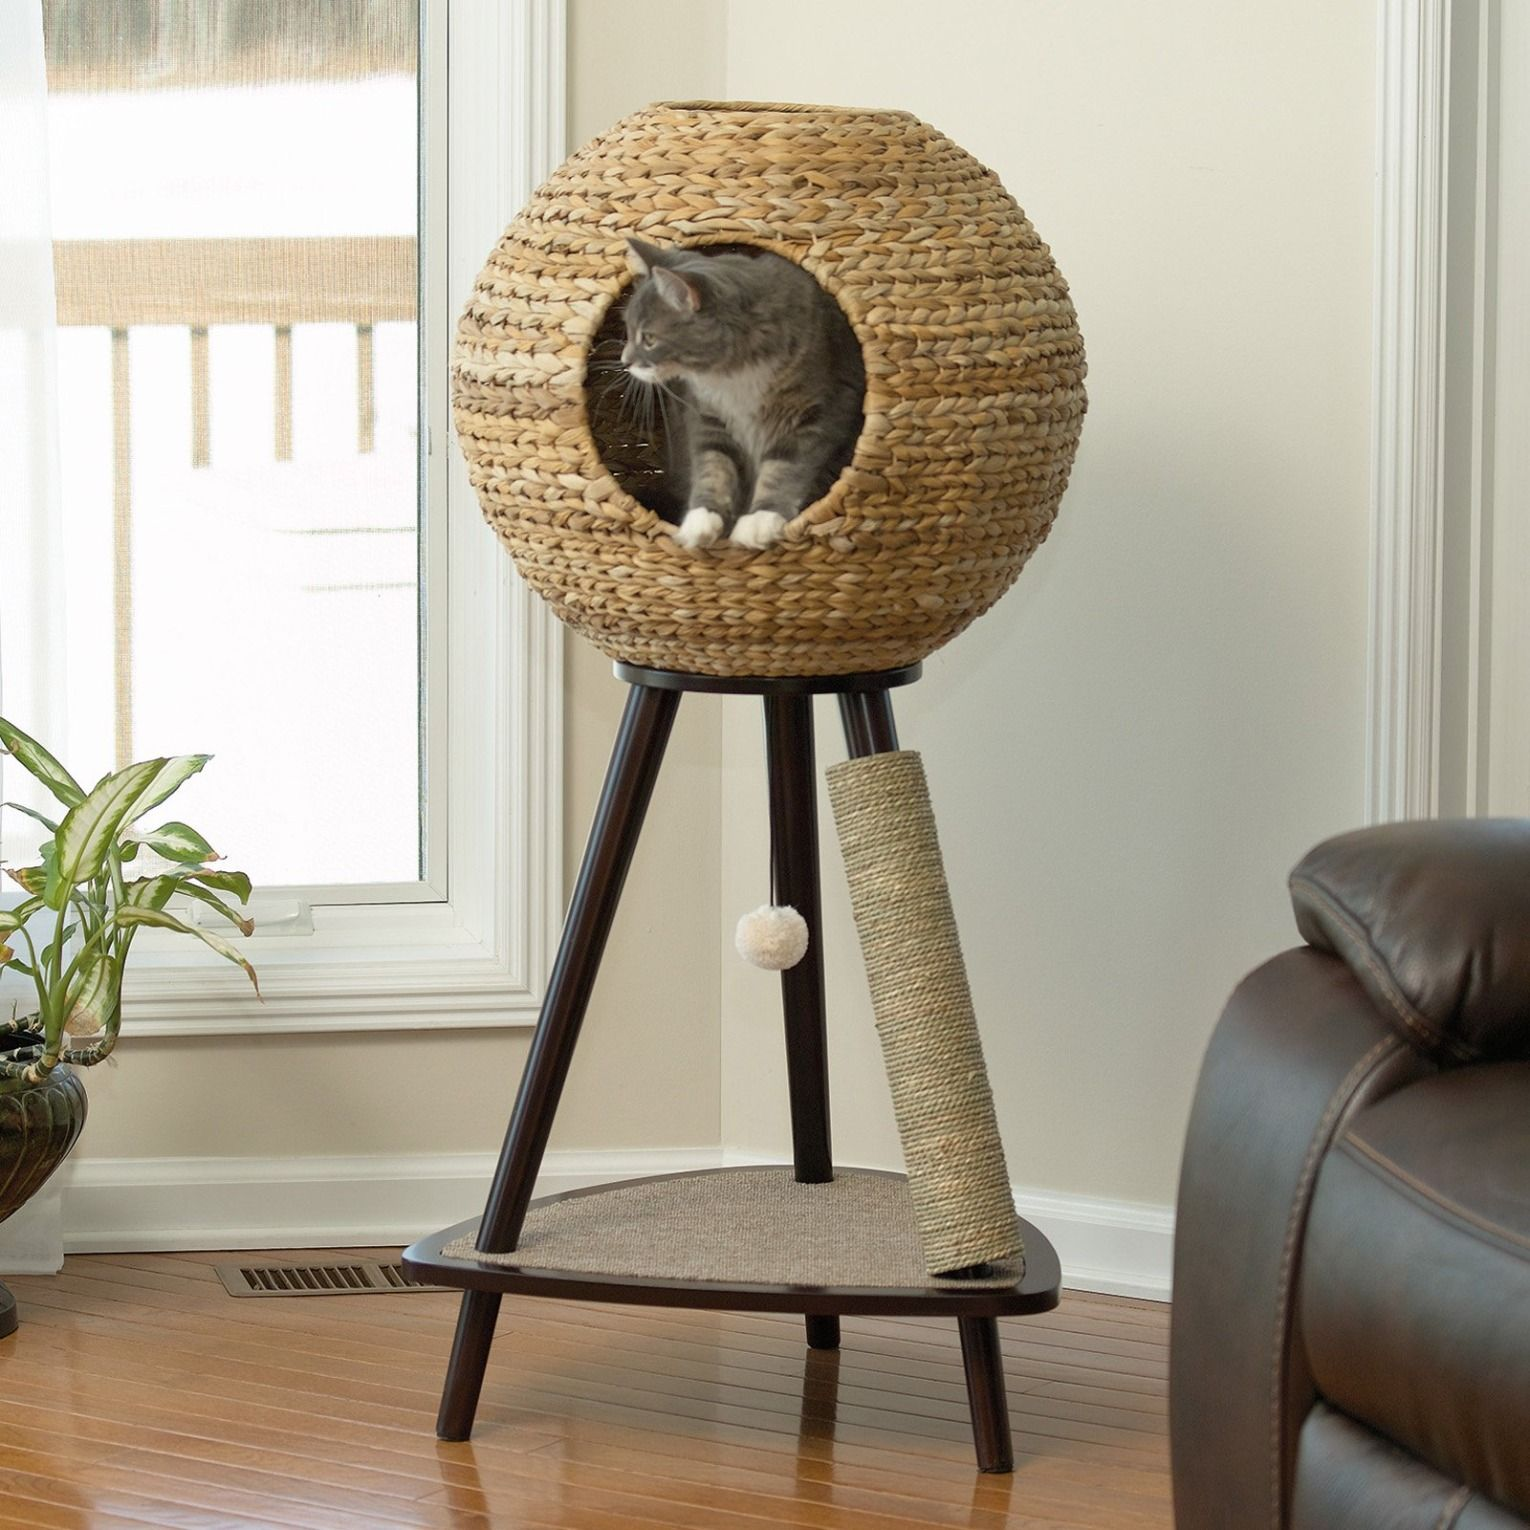 With This Stylish Cat Tower There S Finally Furniture You Ll Actually Want To Display In Your Living Room Kitty Pinterest